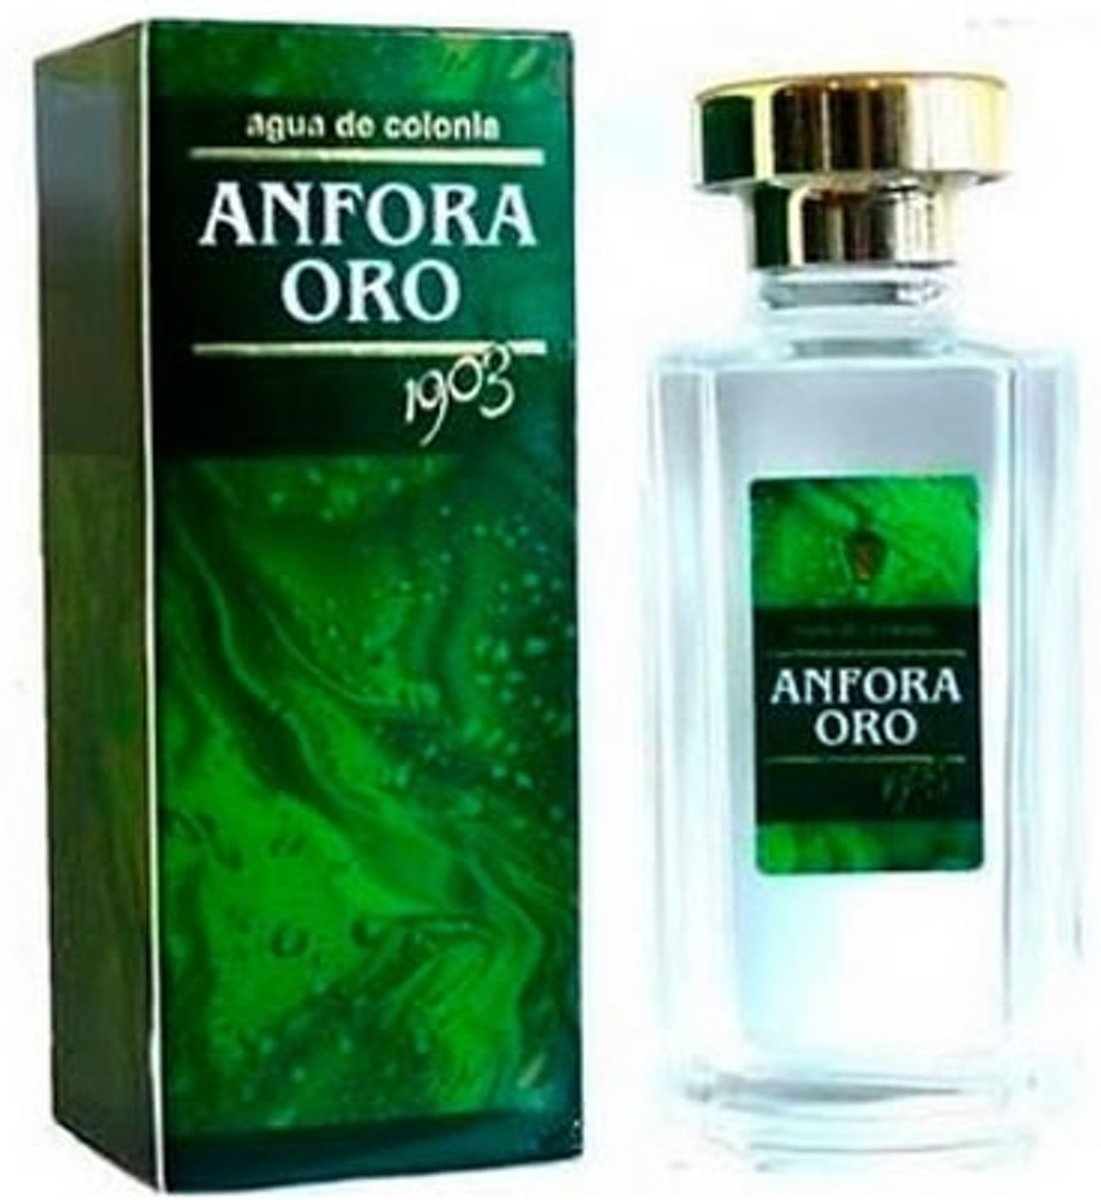 MULTI BUNDEL 2 stuks Instituto Espanol Anfora Oro Eau De Cologne Spray 400ml